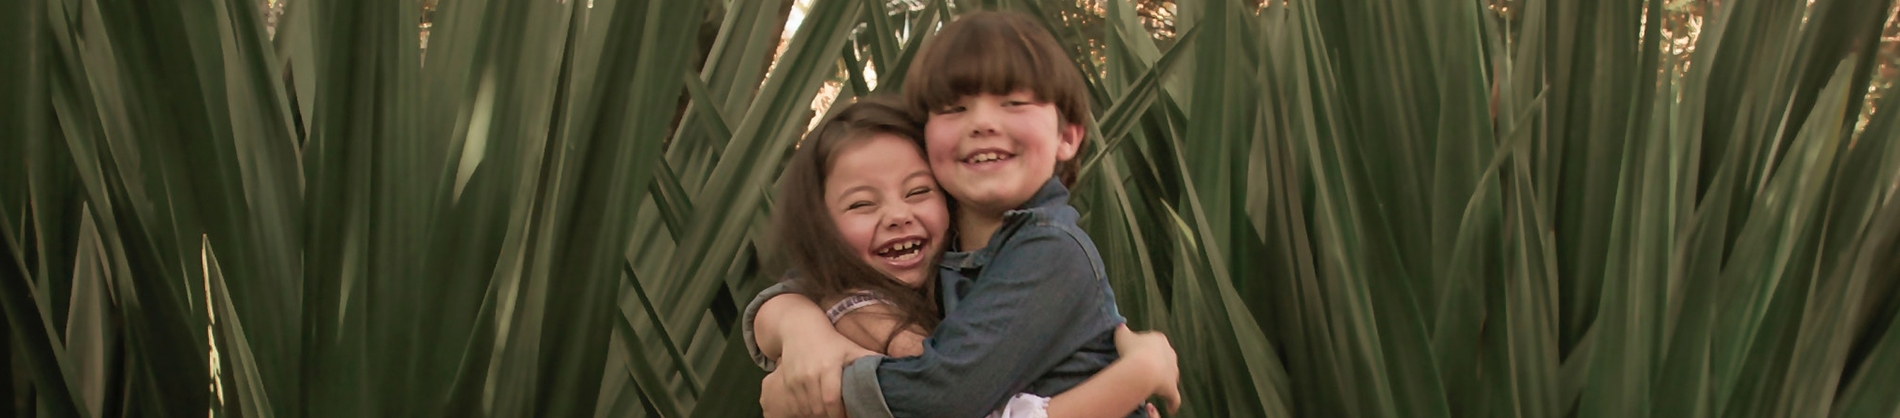 Two children hugging and laughing in front of foliage